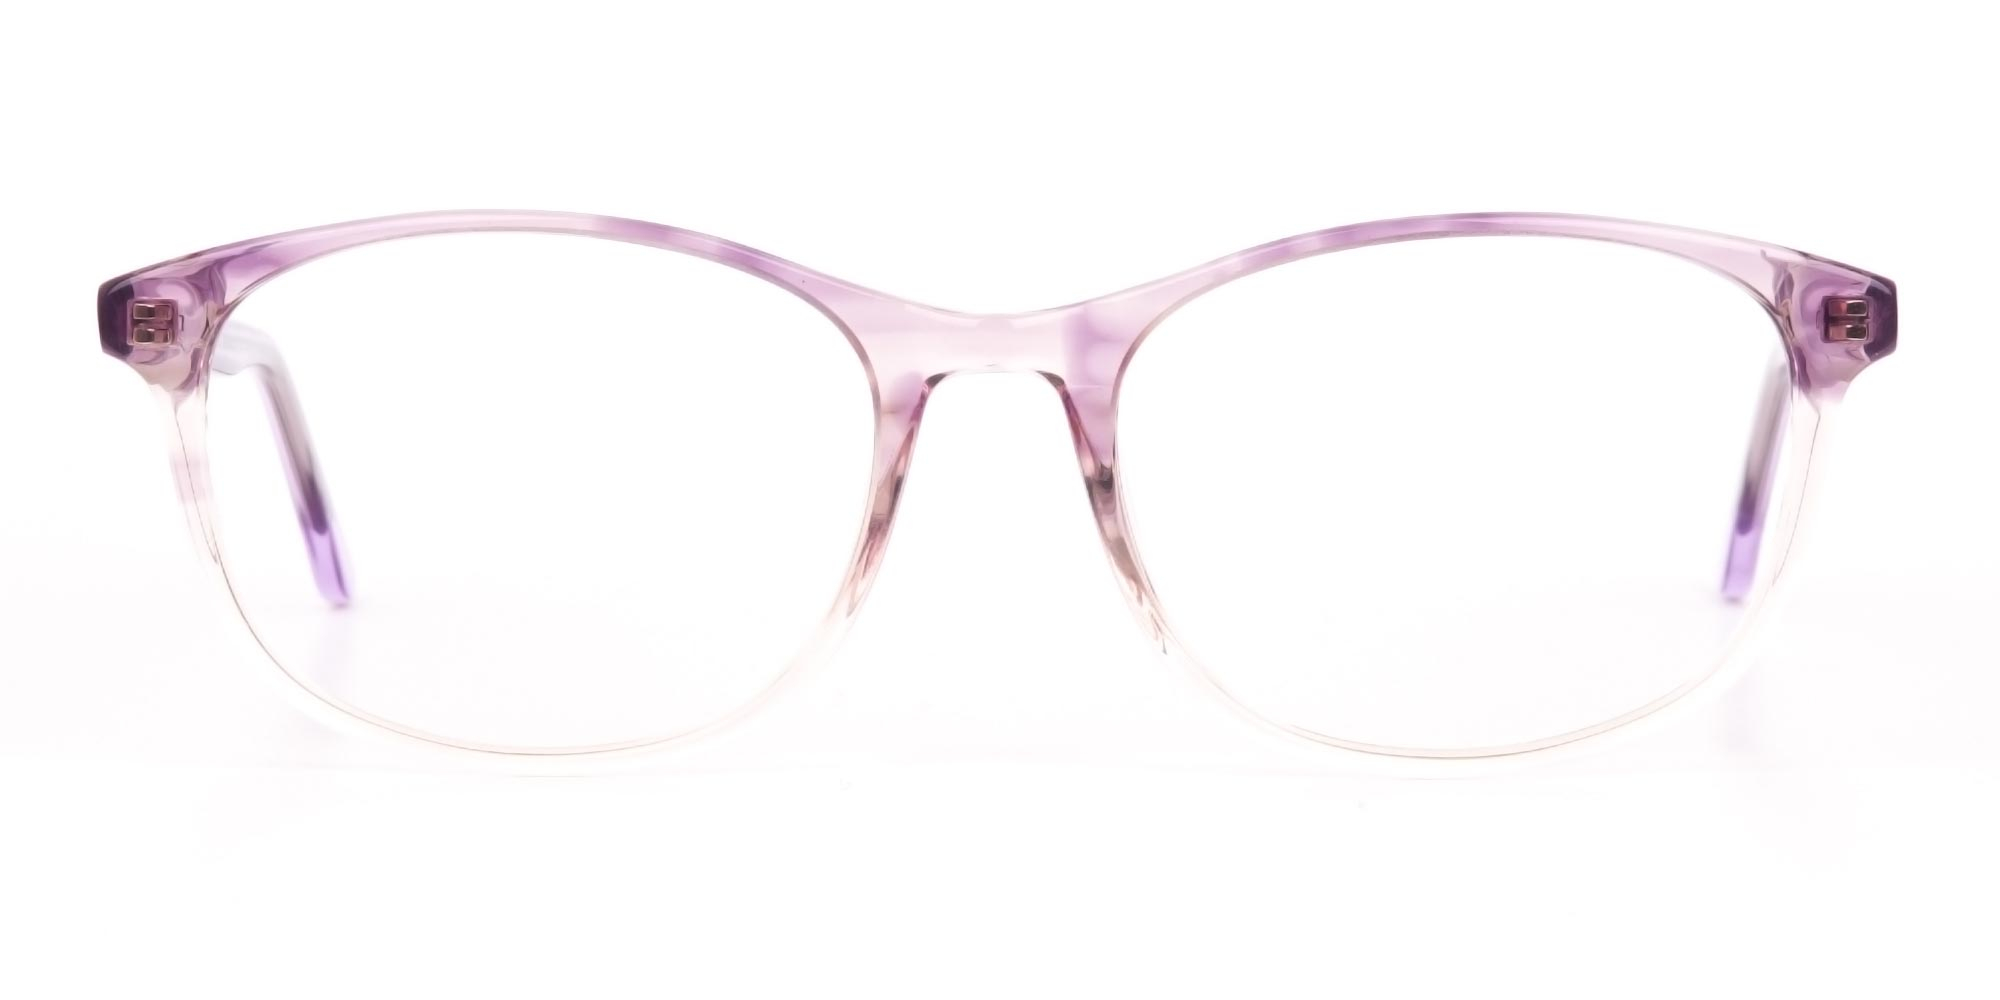 Crystal Purple Glasses Trends 2020